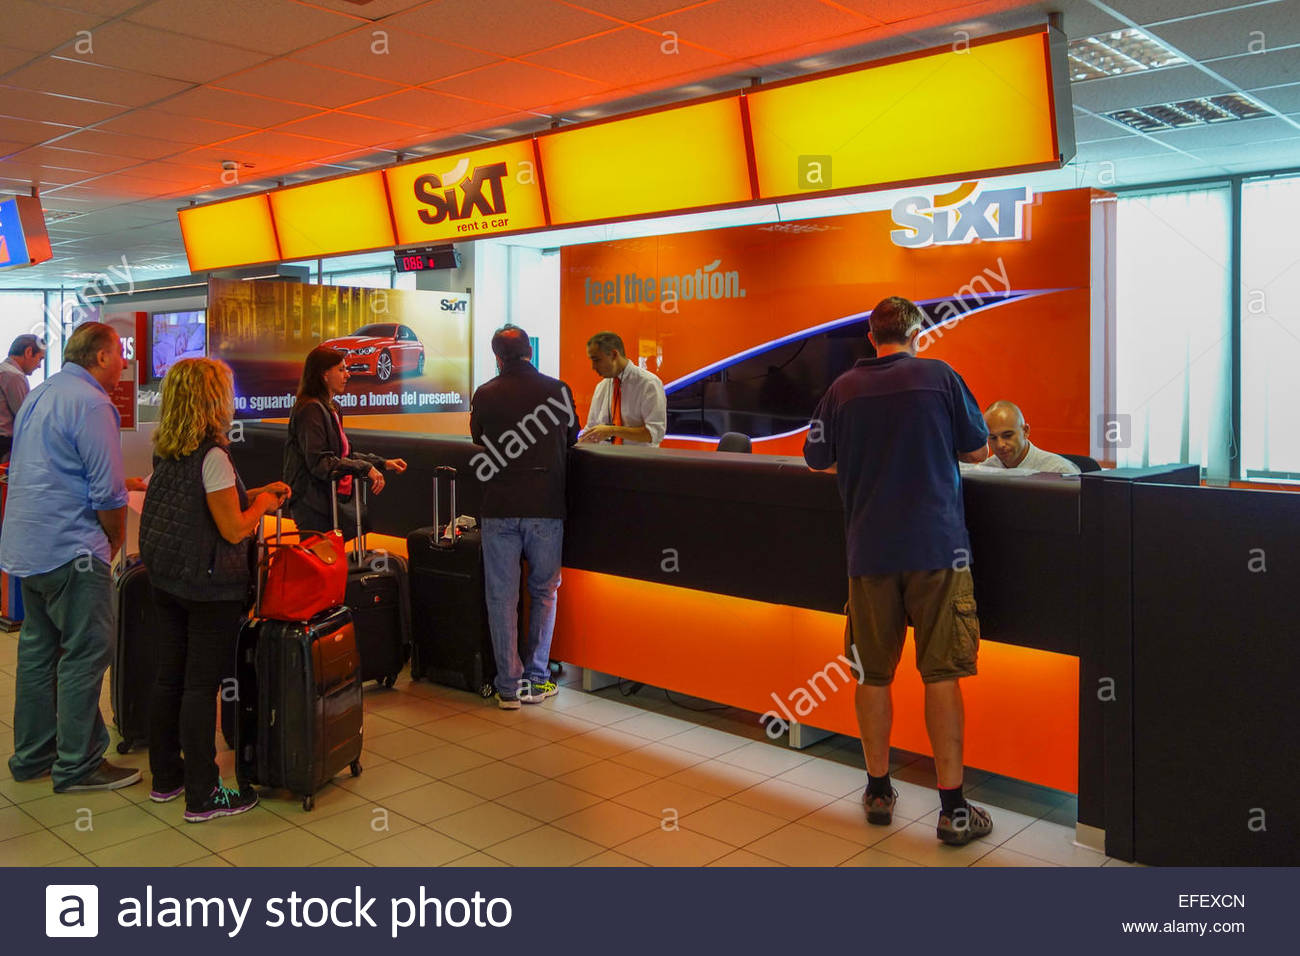 sixt car hire stockfotos sixt car hire bilder alamy. Black Bedroom Furniture Sets. Home Design Ideas